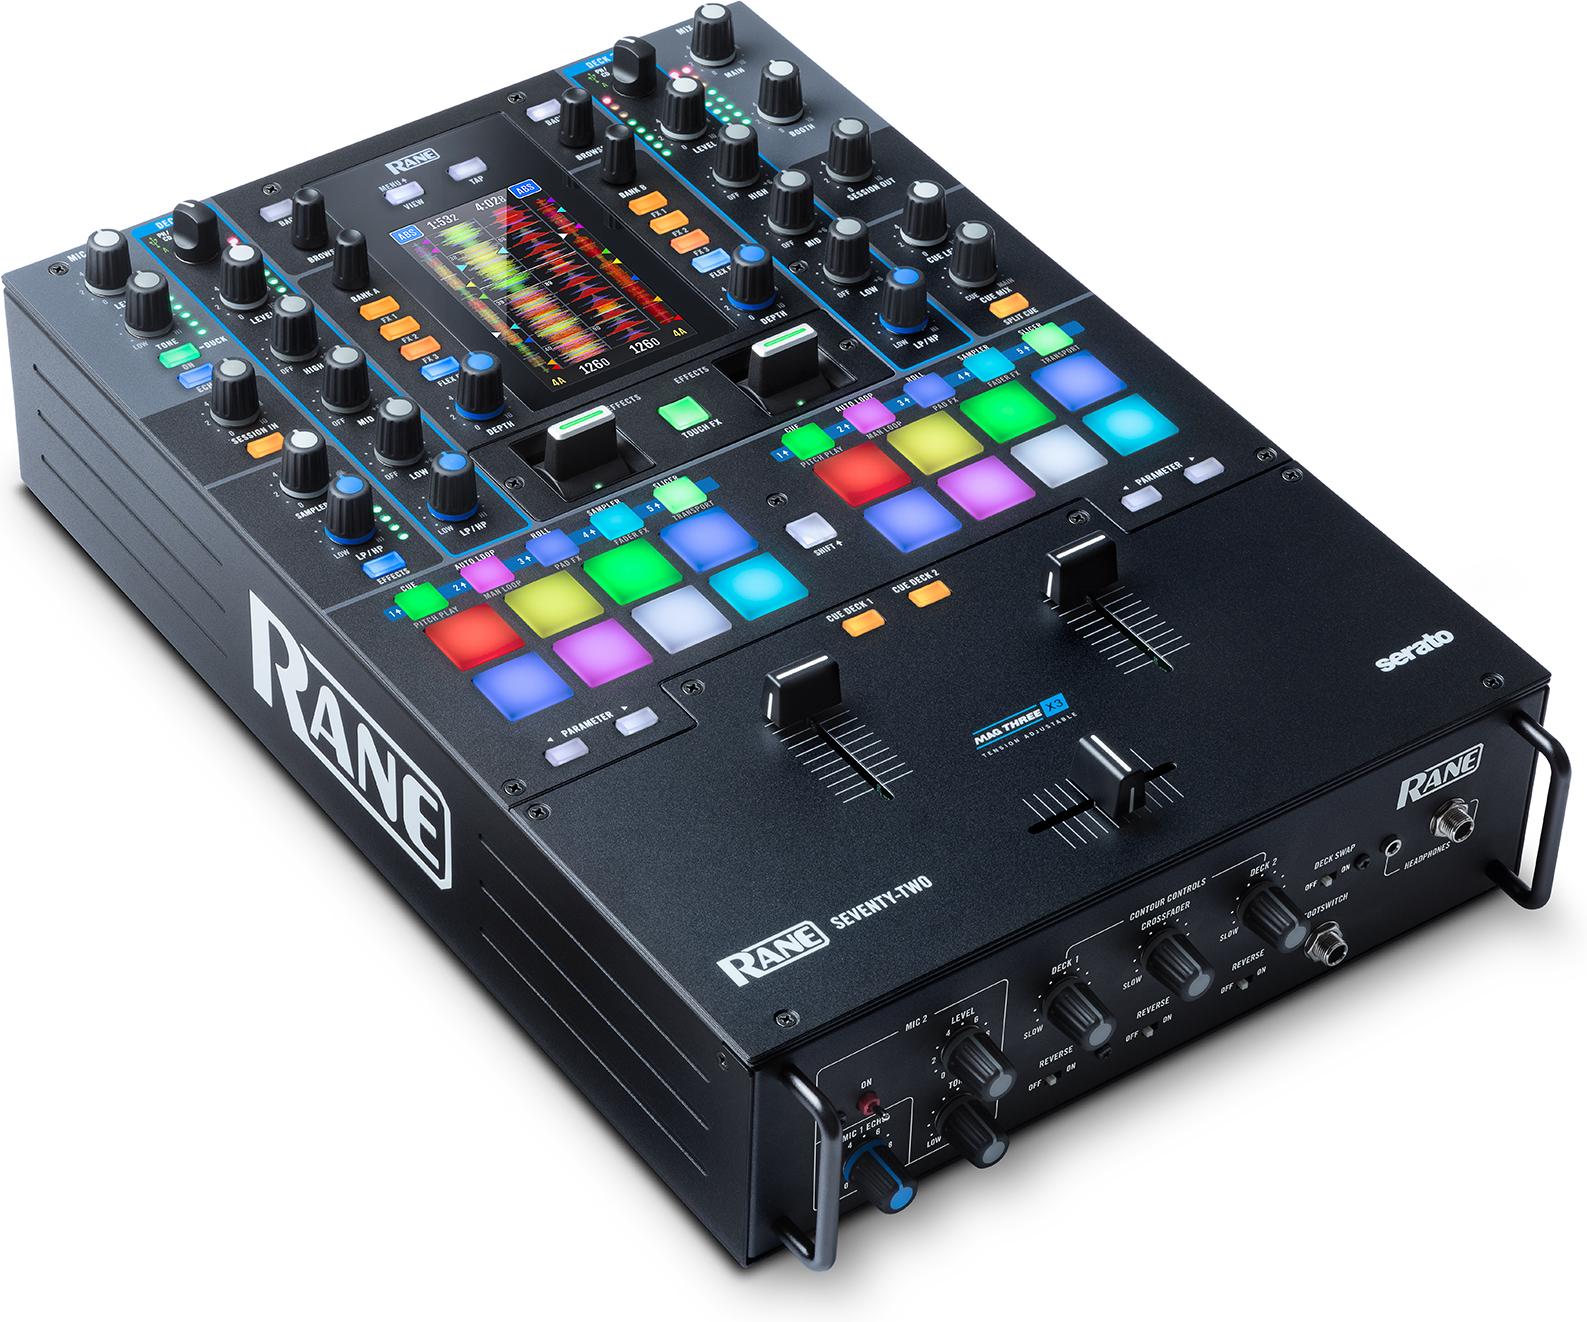 Rane Seventy-Two Mixer in der Draufsicht.